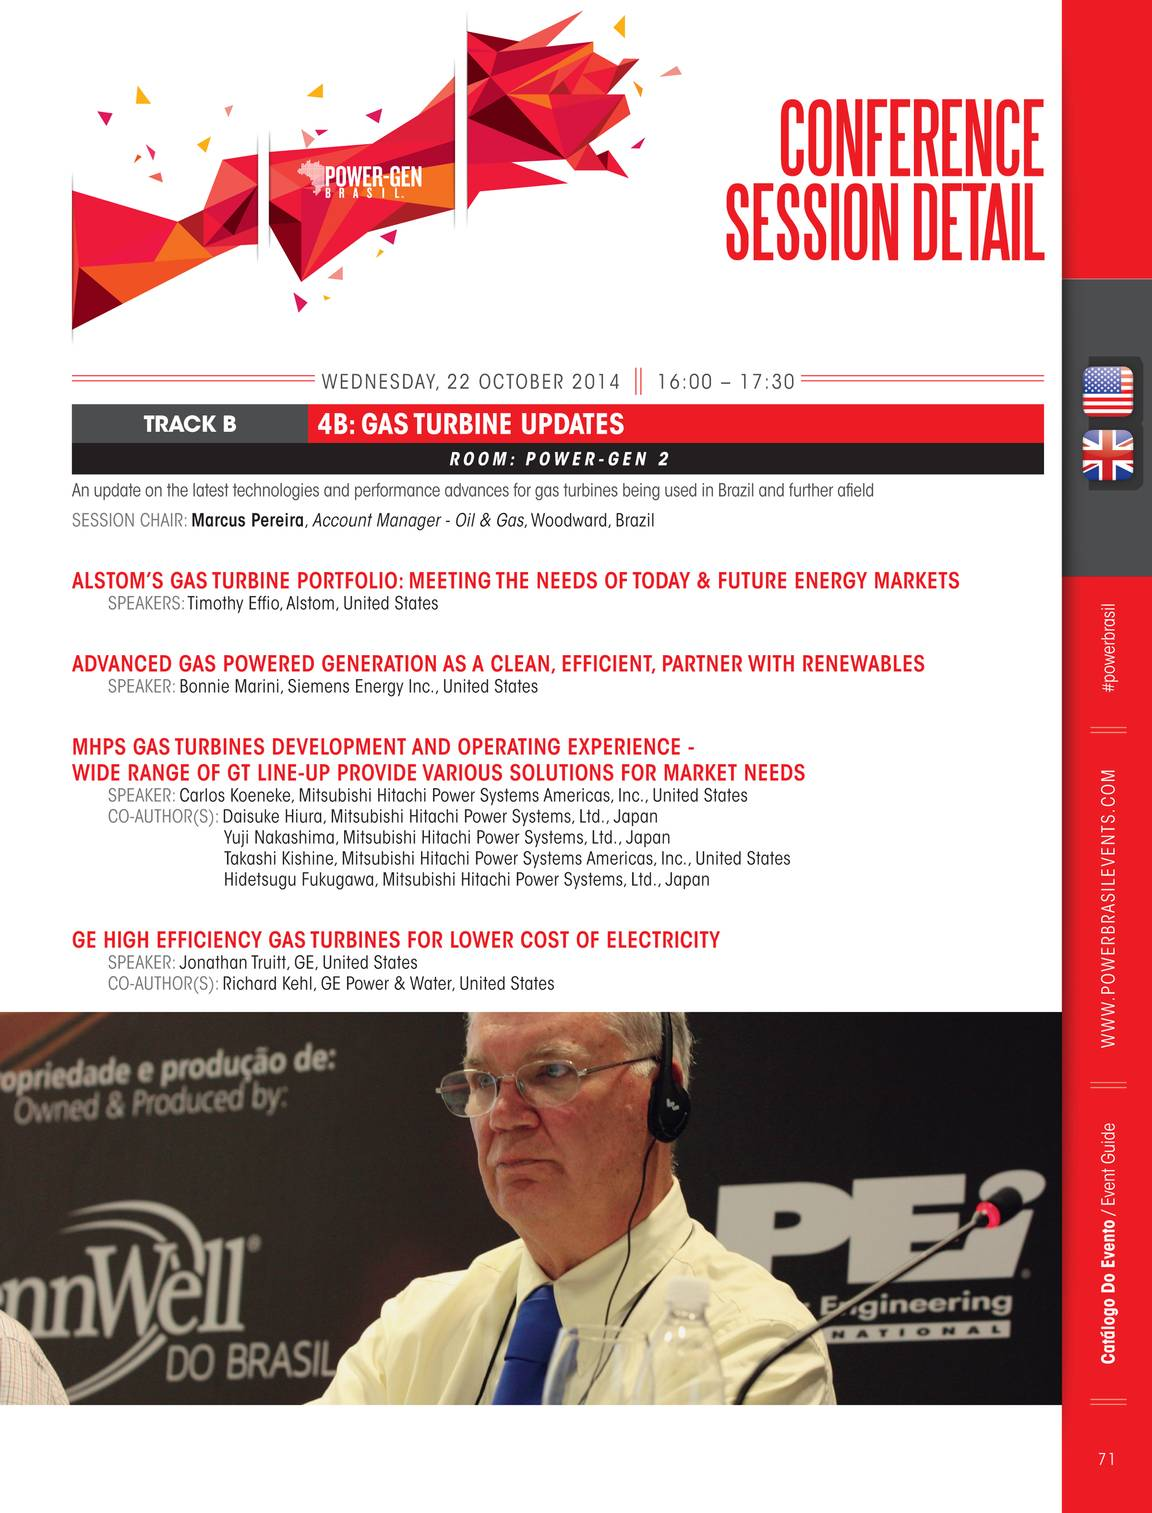 Pennwell Supplements Power Brasil Events 2014 Showguide Page 70 Line Up Mitsubishi Hitachi Systems Ltd Americas Brazil 71